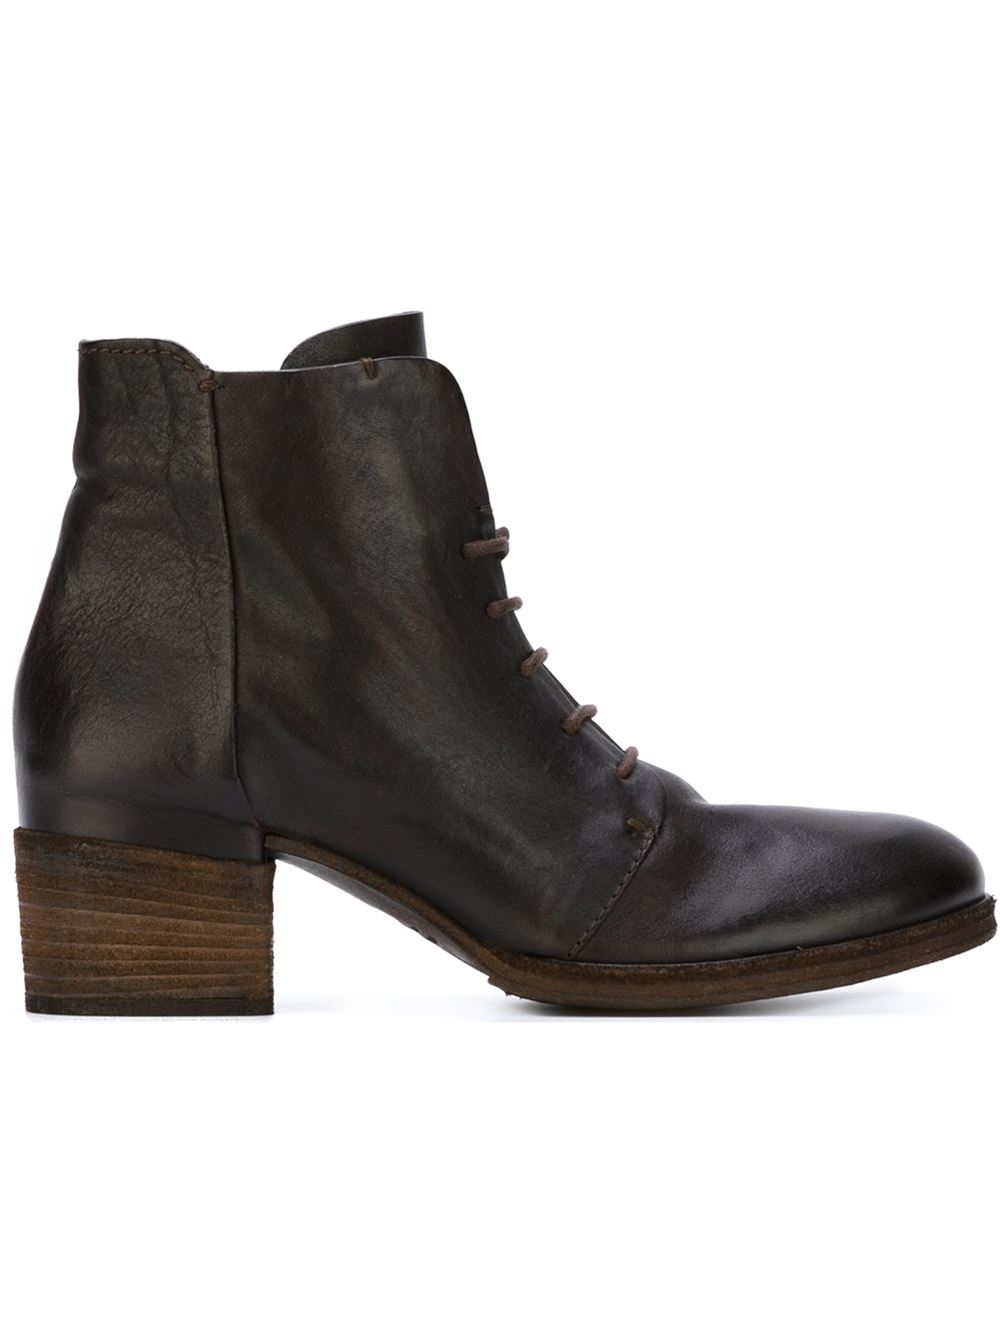 Roberto Del Carlo Round-Toe Leather Booties footaction sale online eRLzyW1MGZ